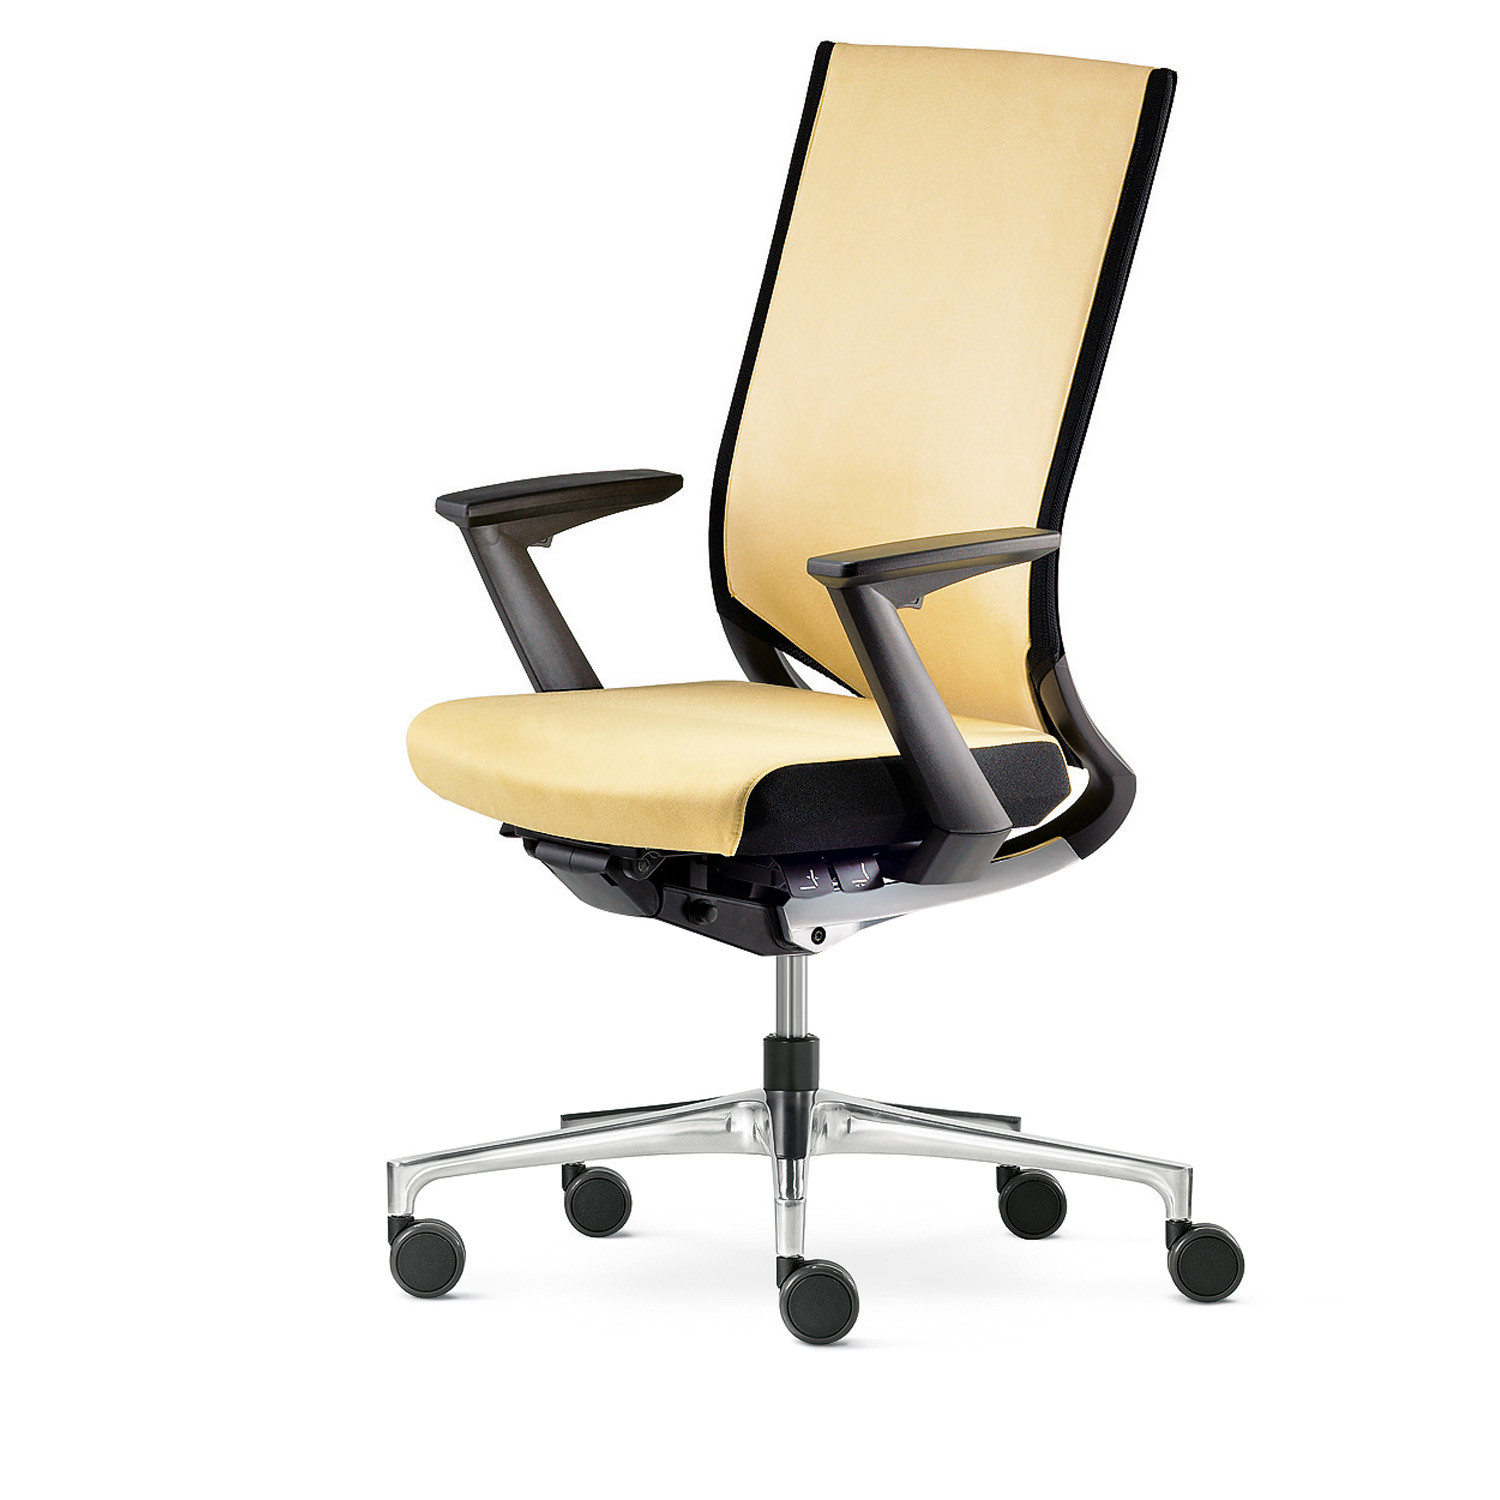 Duera Swivel Chair by Klober